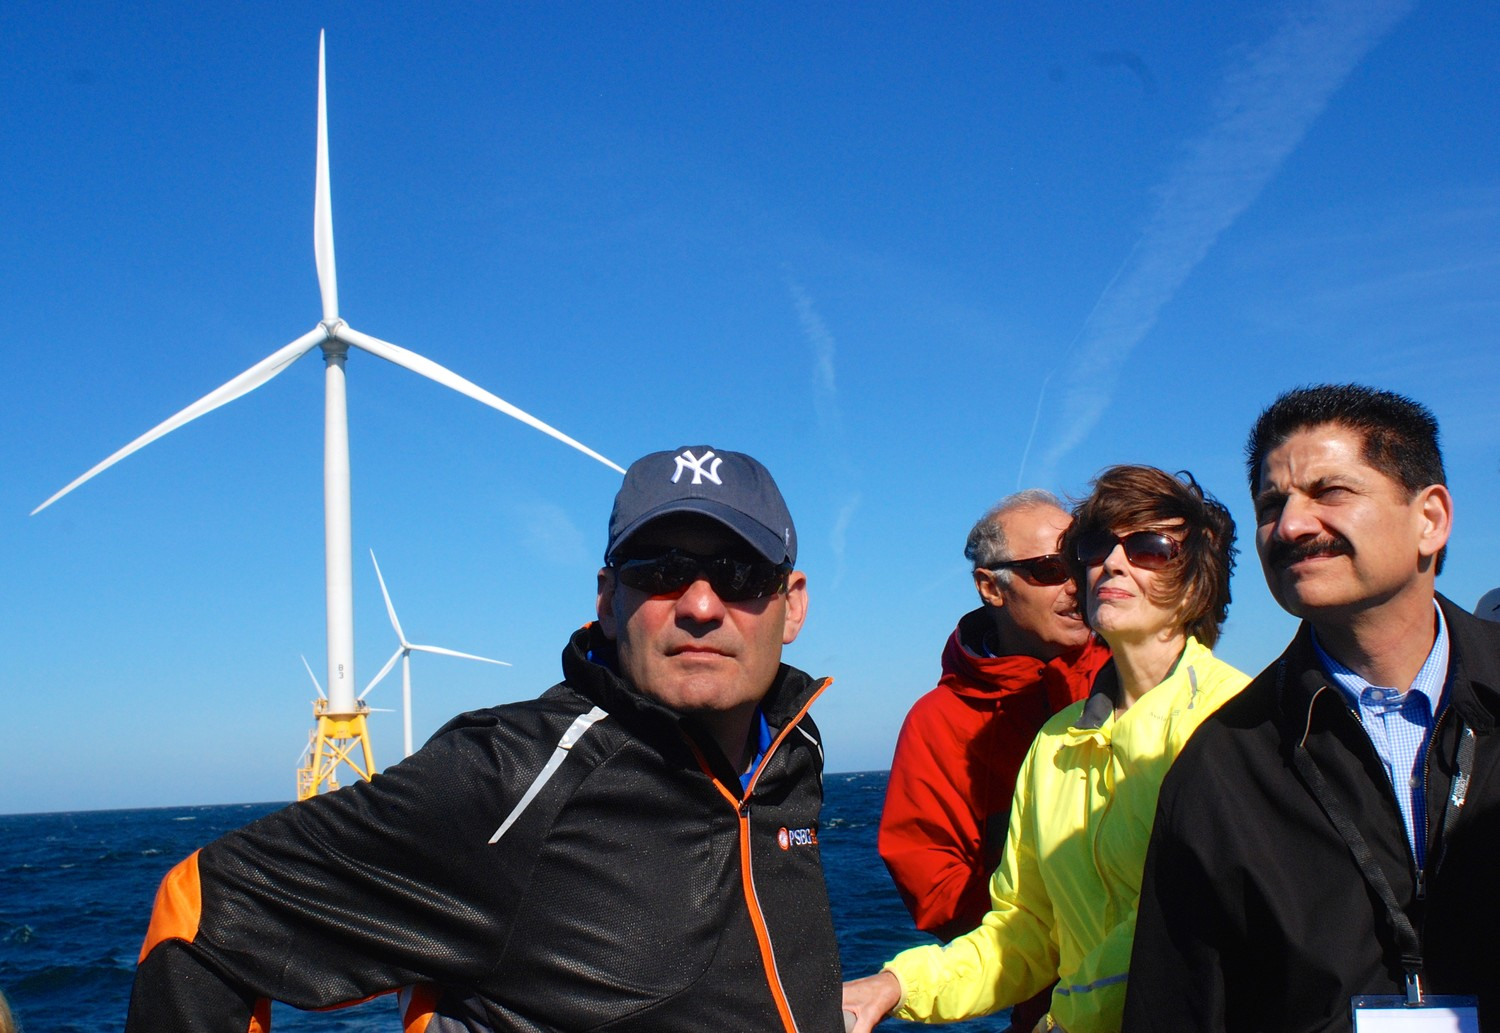 The Long Island Association, in conjunction with Stony Brook University's Advanced Energy Research Center, the Gershow Recycling Corporation and Deepwater Wind, hosted a tour last Wednesday of the wind farm recently constructed three miles off the Block Island coastline. At center, in yellow, was LIA Board of Directors member Katherine Heaviside.